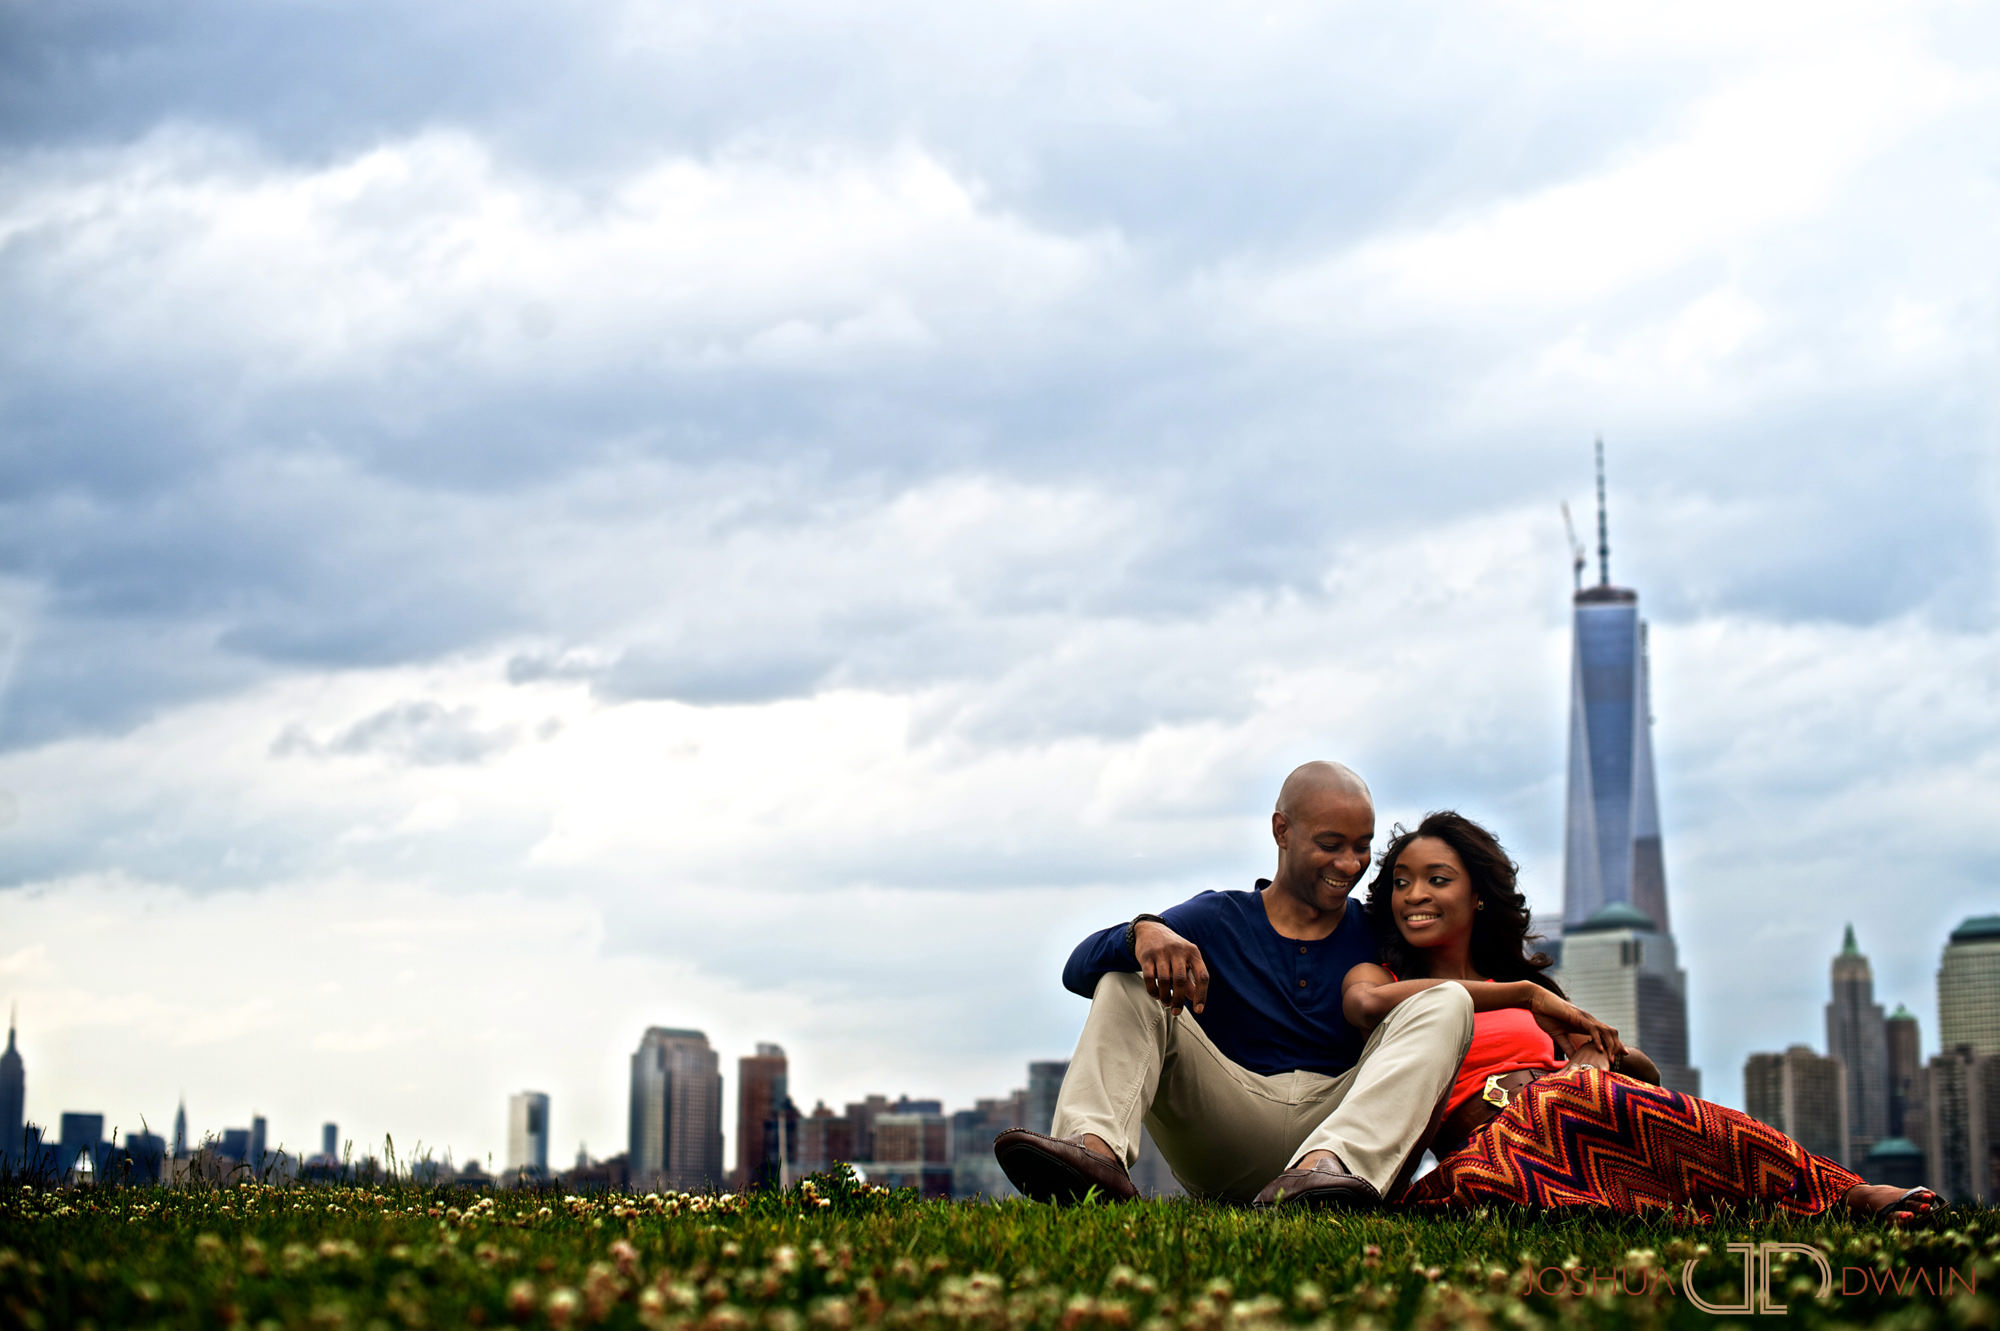 nkechi-curtis-001-liberty-state-park-new-jersey-engagement-photographer-joshua-dwain-2013-06-16_NC_006